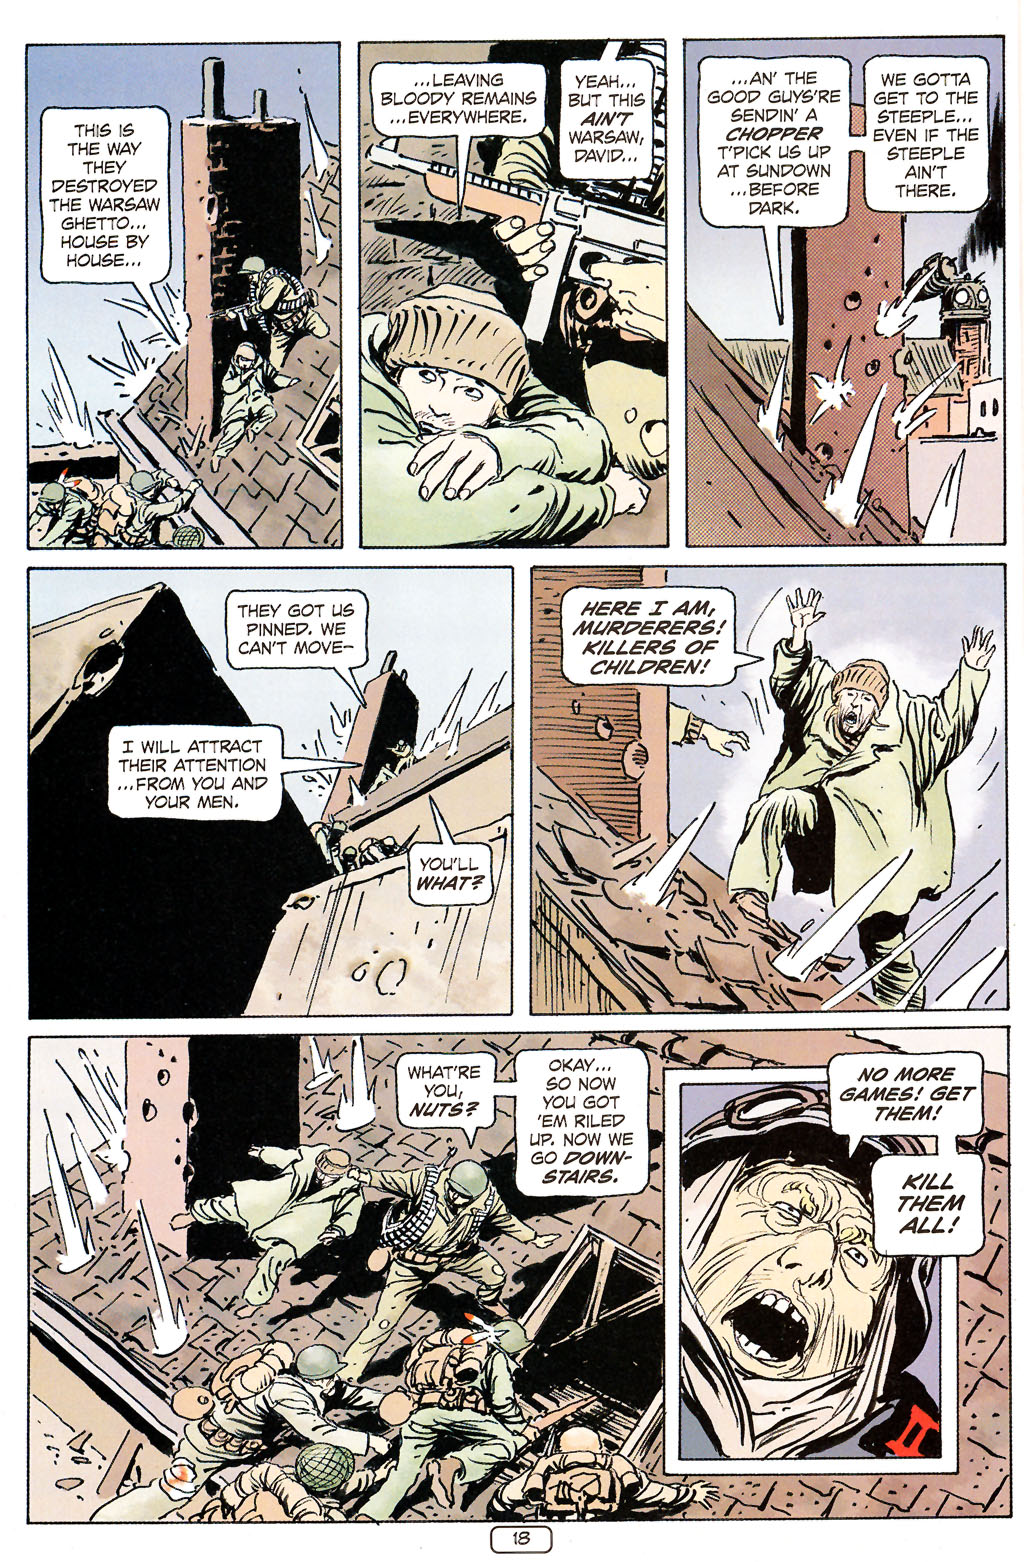 Read online Sgt. Rock: The Prophecy comic -  Issue #6 - 18